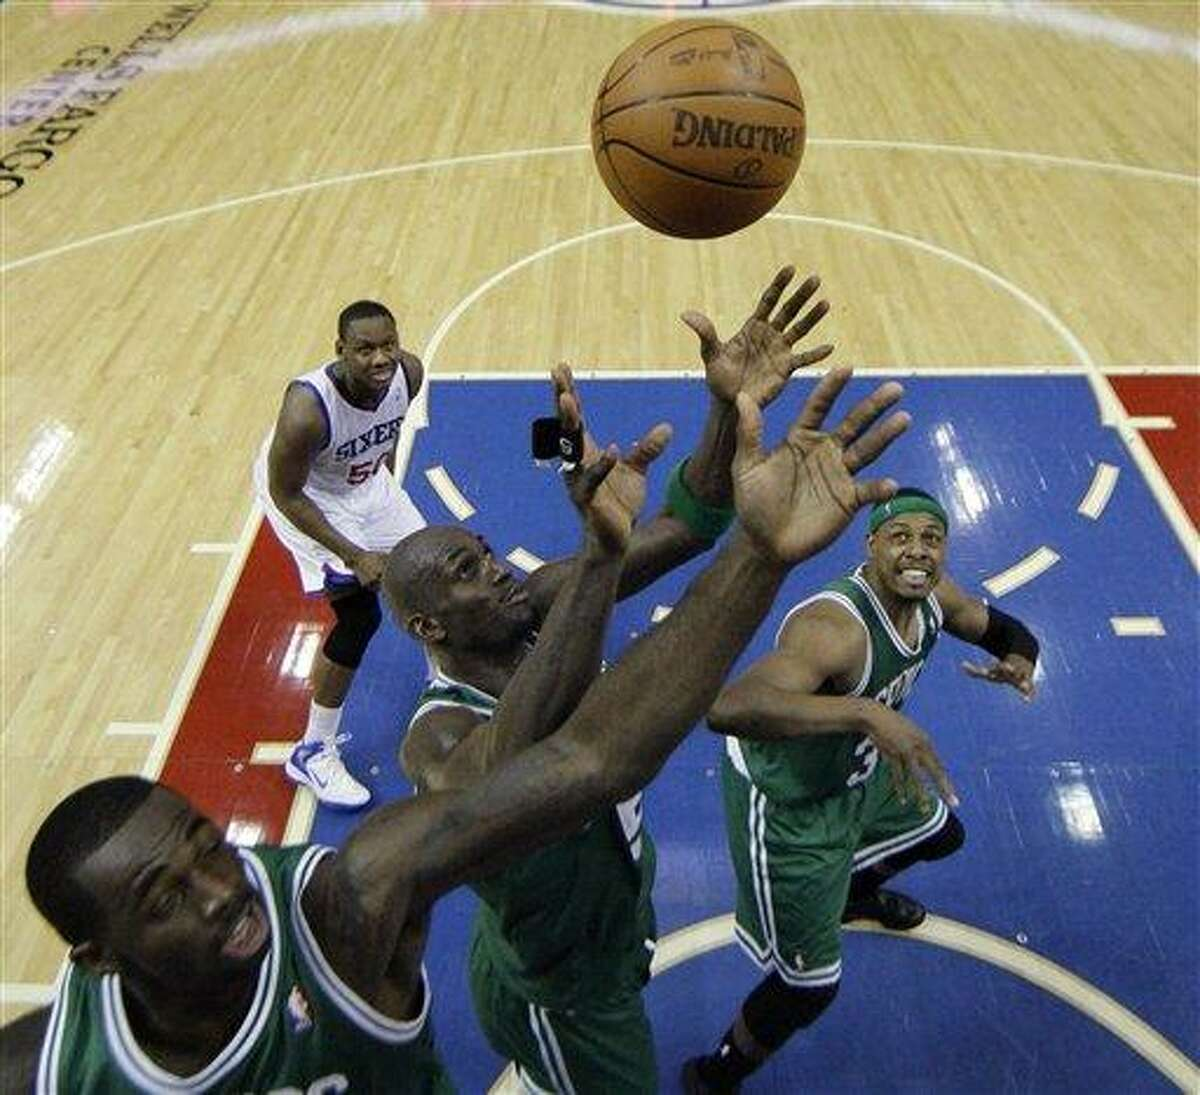 Boston Celtics' Brandon Bass, from left, Kevin Garnett and Paul Pierce chase down a rebound as Philadelphia 76ers' Lavoy Allen, top left, watches during the second half of Game 3 of an NBA basketball Eastern Conference semifinal playoff series, Wednesday, May 16, 2012, in Philadelphia. Boston won 107-91. (AP Photo/Matt Slocum)